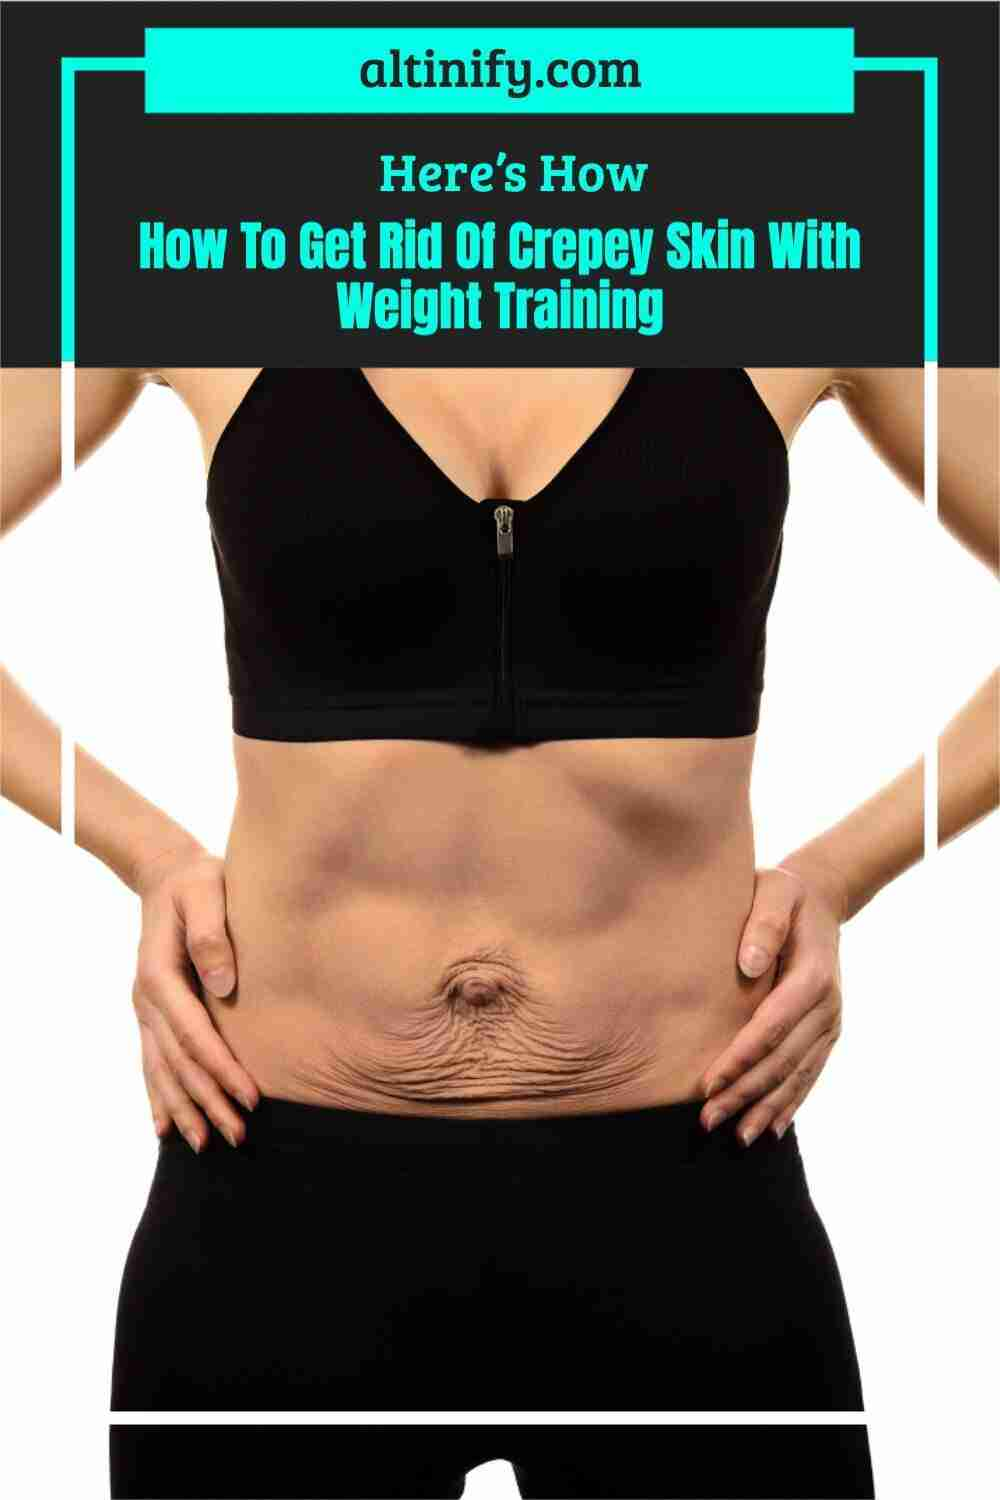 How To Get Rid Of Crepey Skin With Weight Training